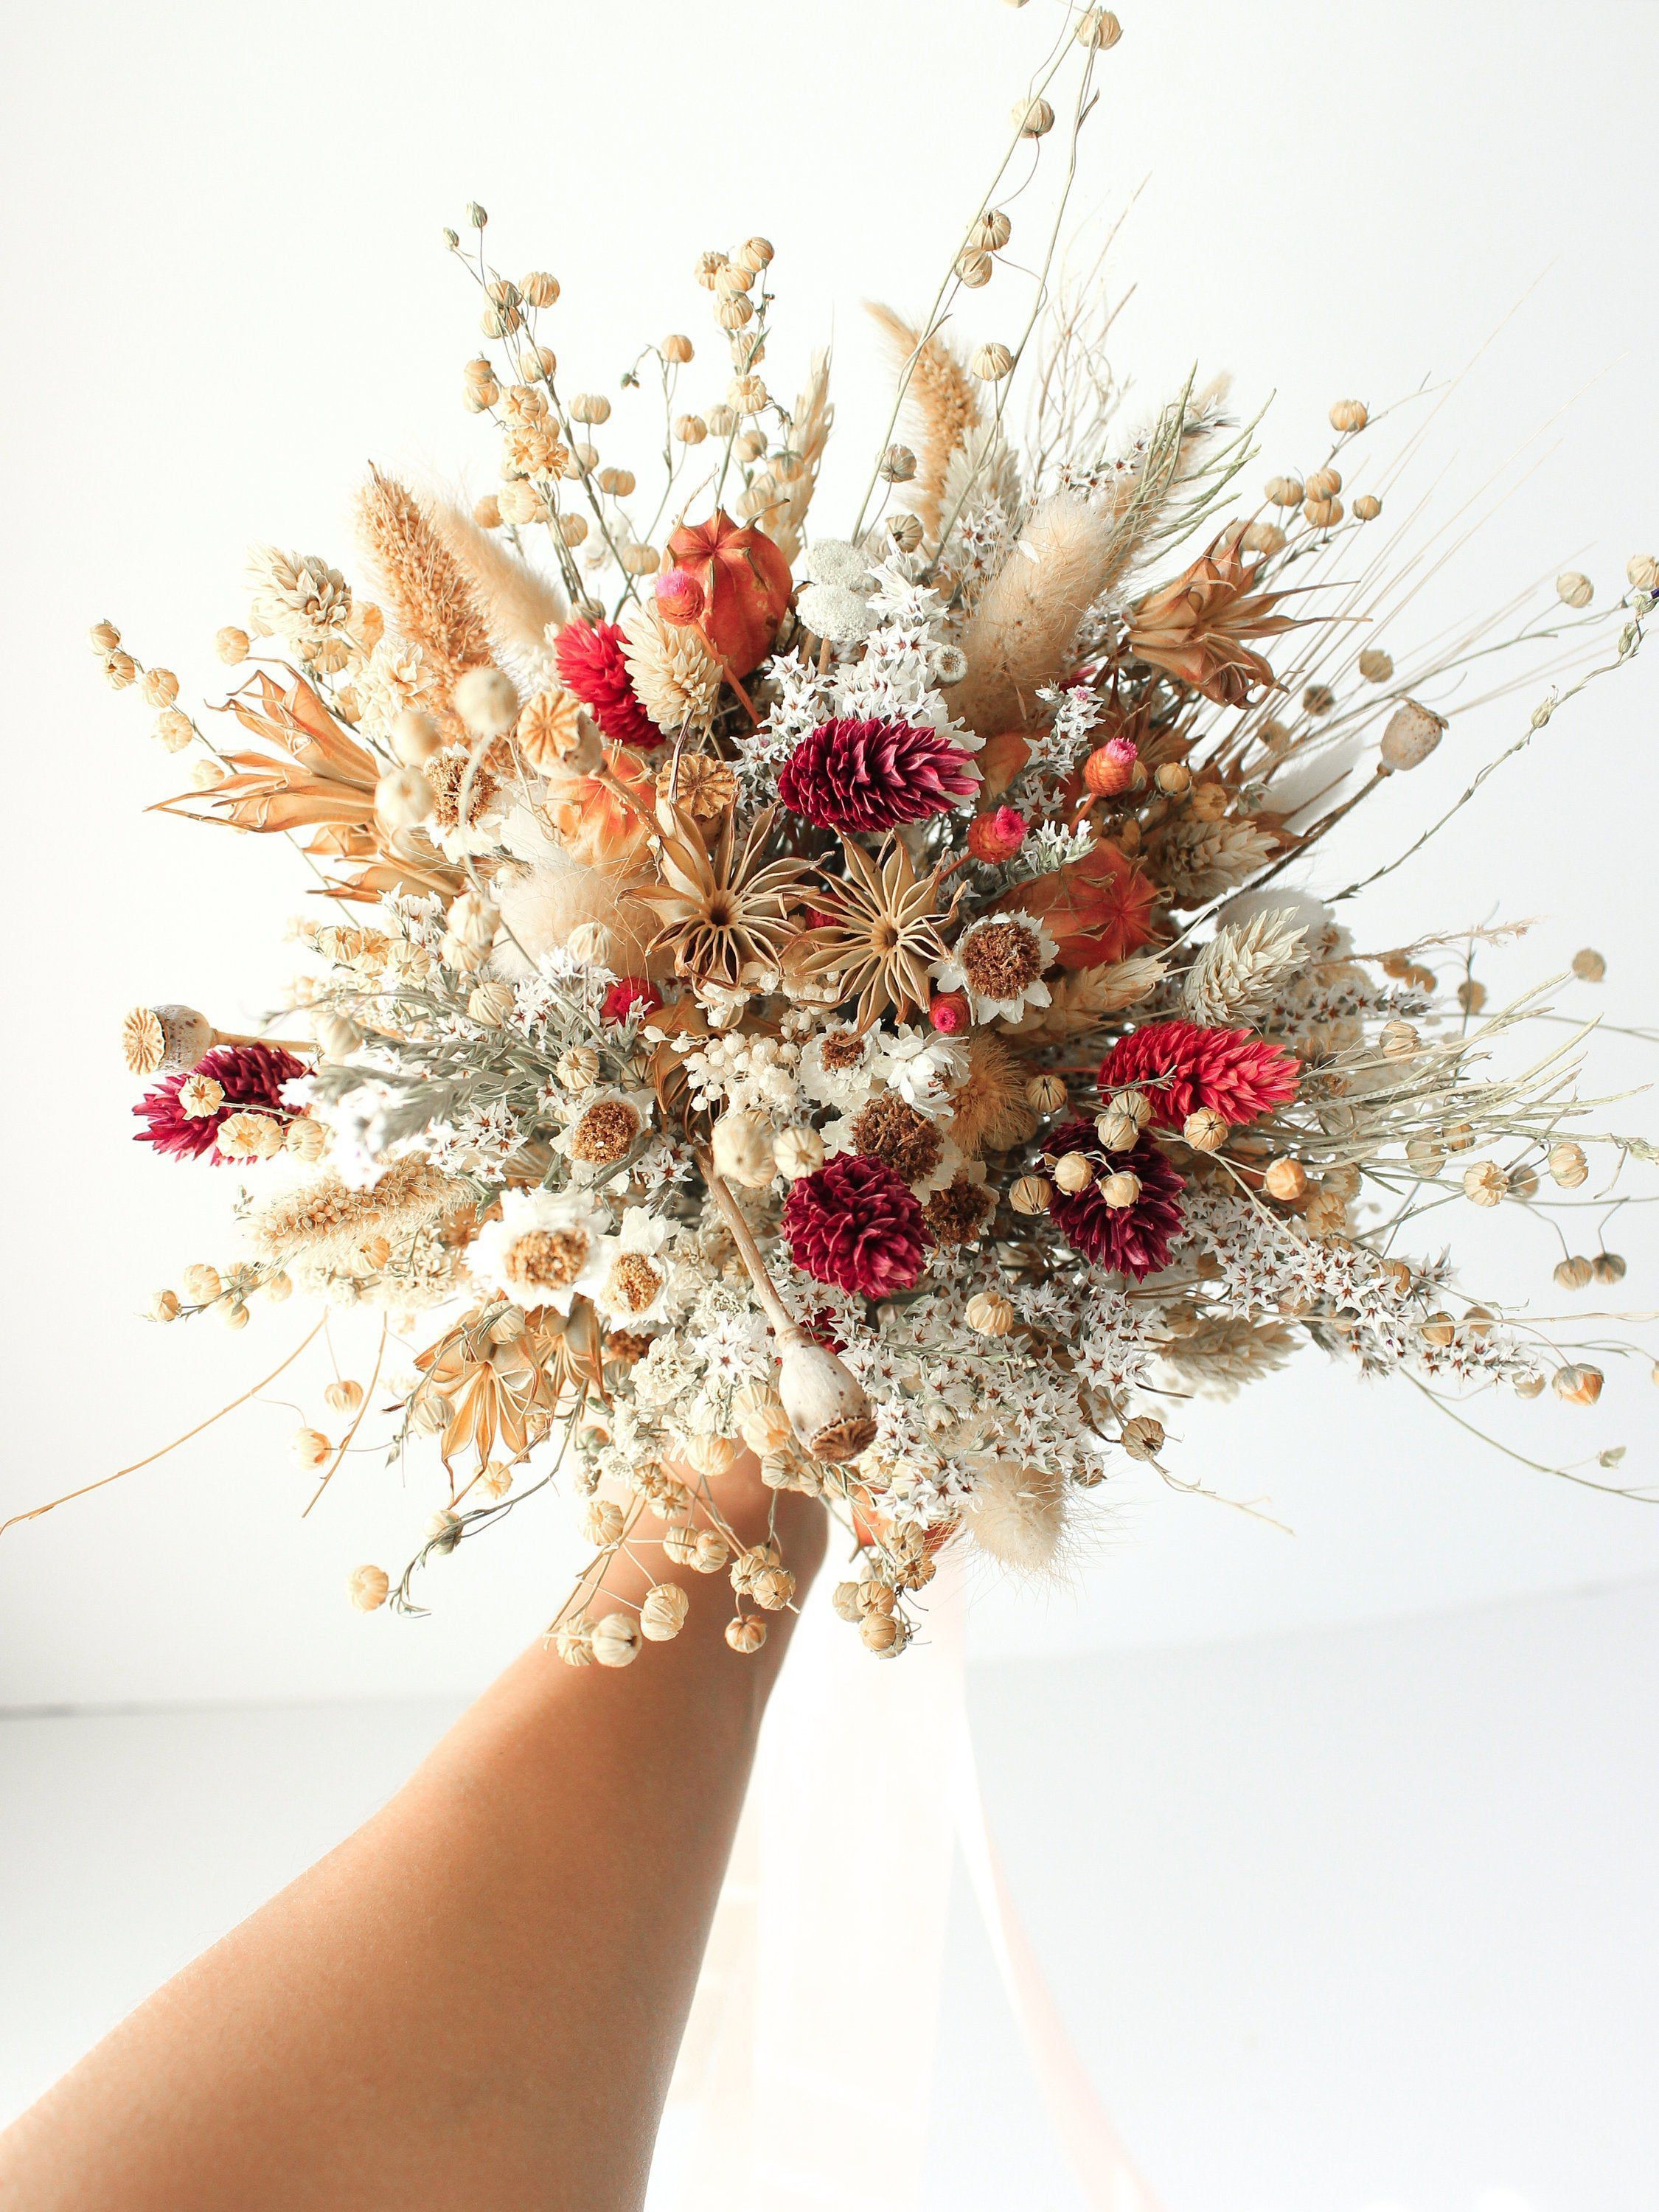 Festival Meadow Bridal bouquet / Dry Flowers bouquet for Wedding / Rustic Boho Brides and Bridesmaid bouquet / Wildflowers Dried bouquet #bridesmaidbouquets